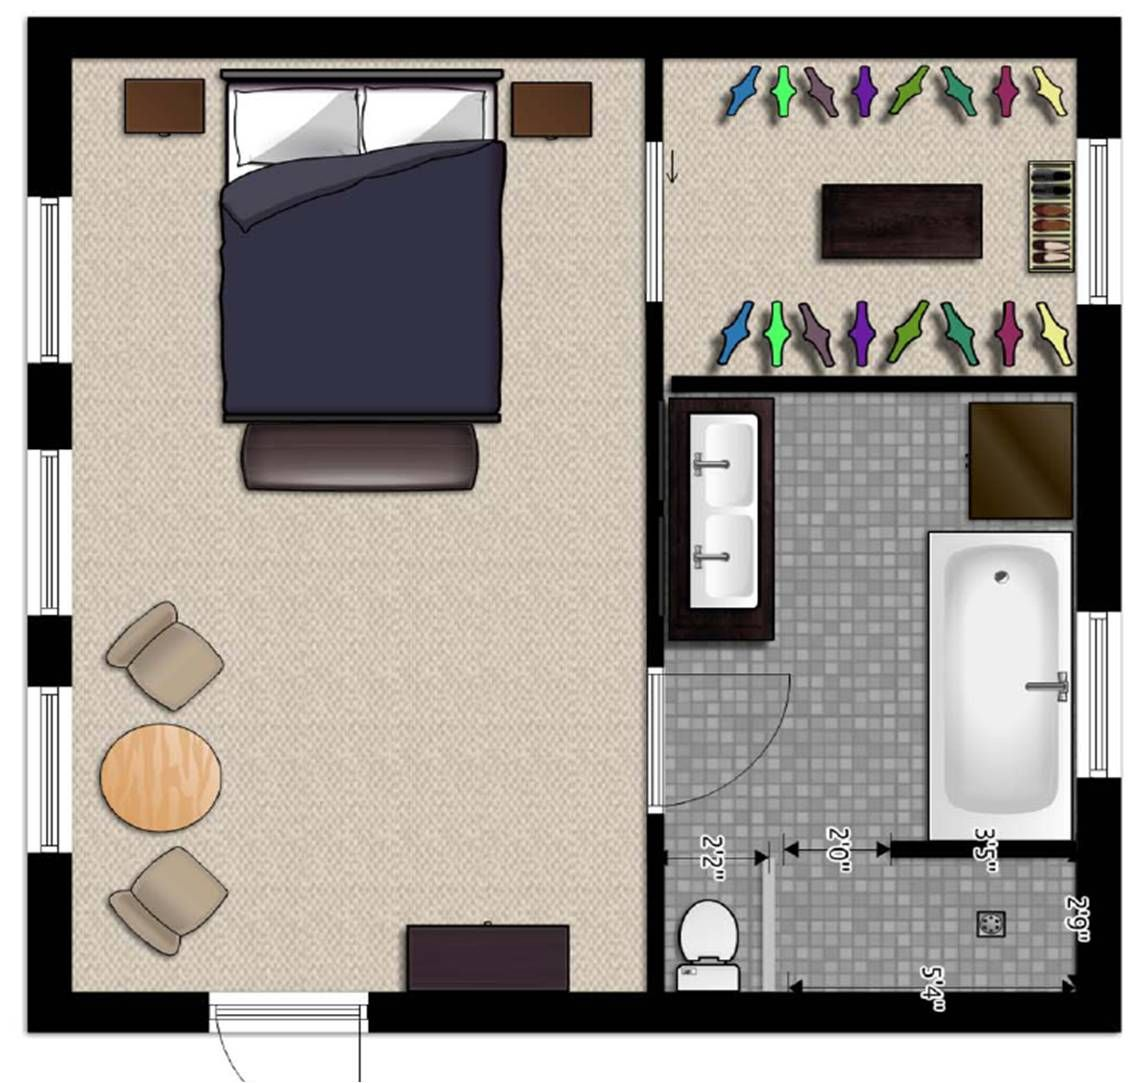 Master Bedroom Additions Plans Google Search Master Bedroom Plans Master Bedroom Addition Master Bedroom Design Layout